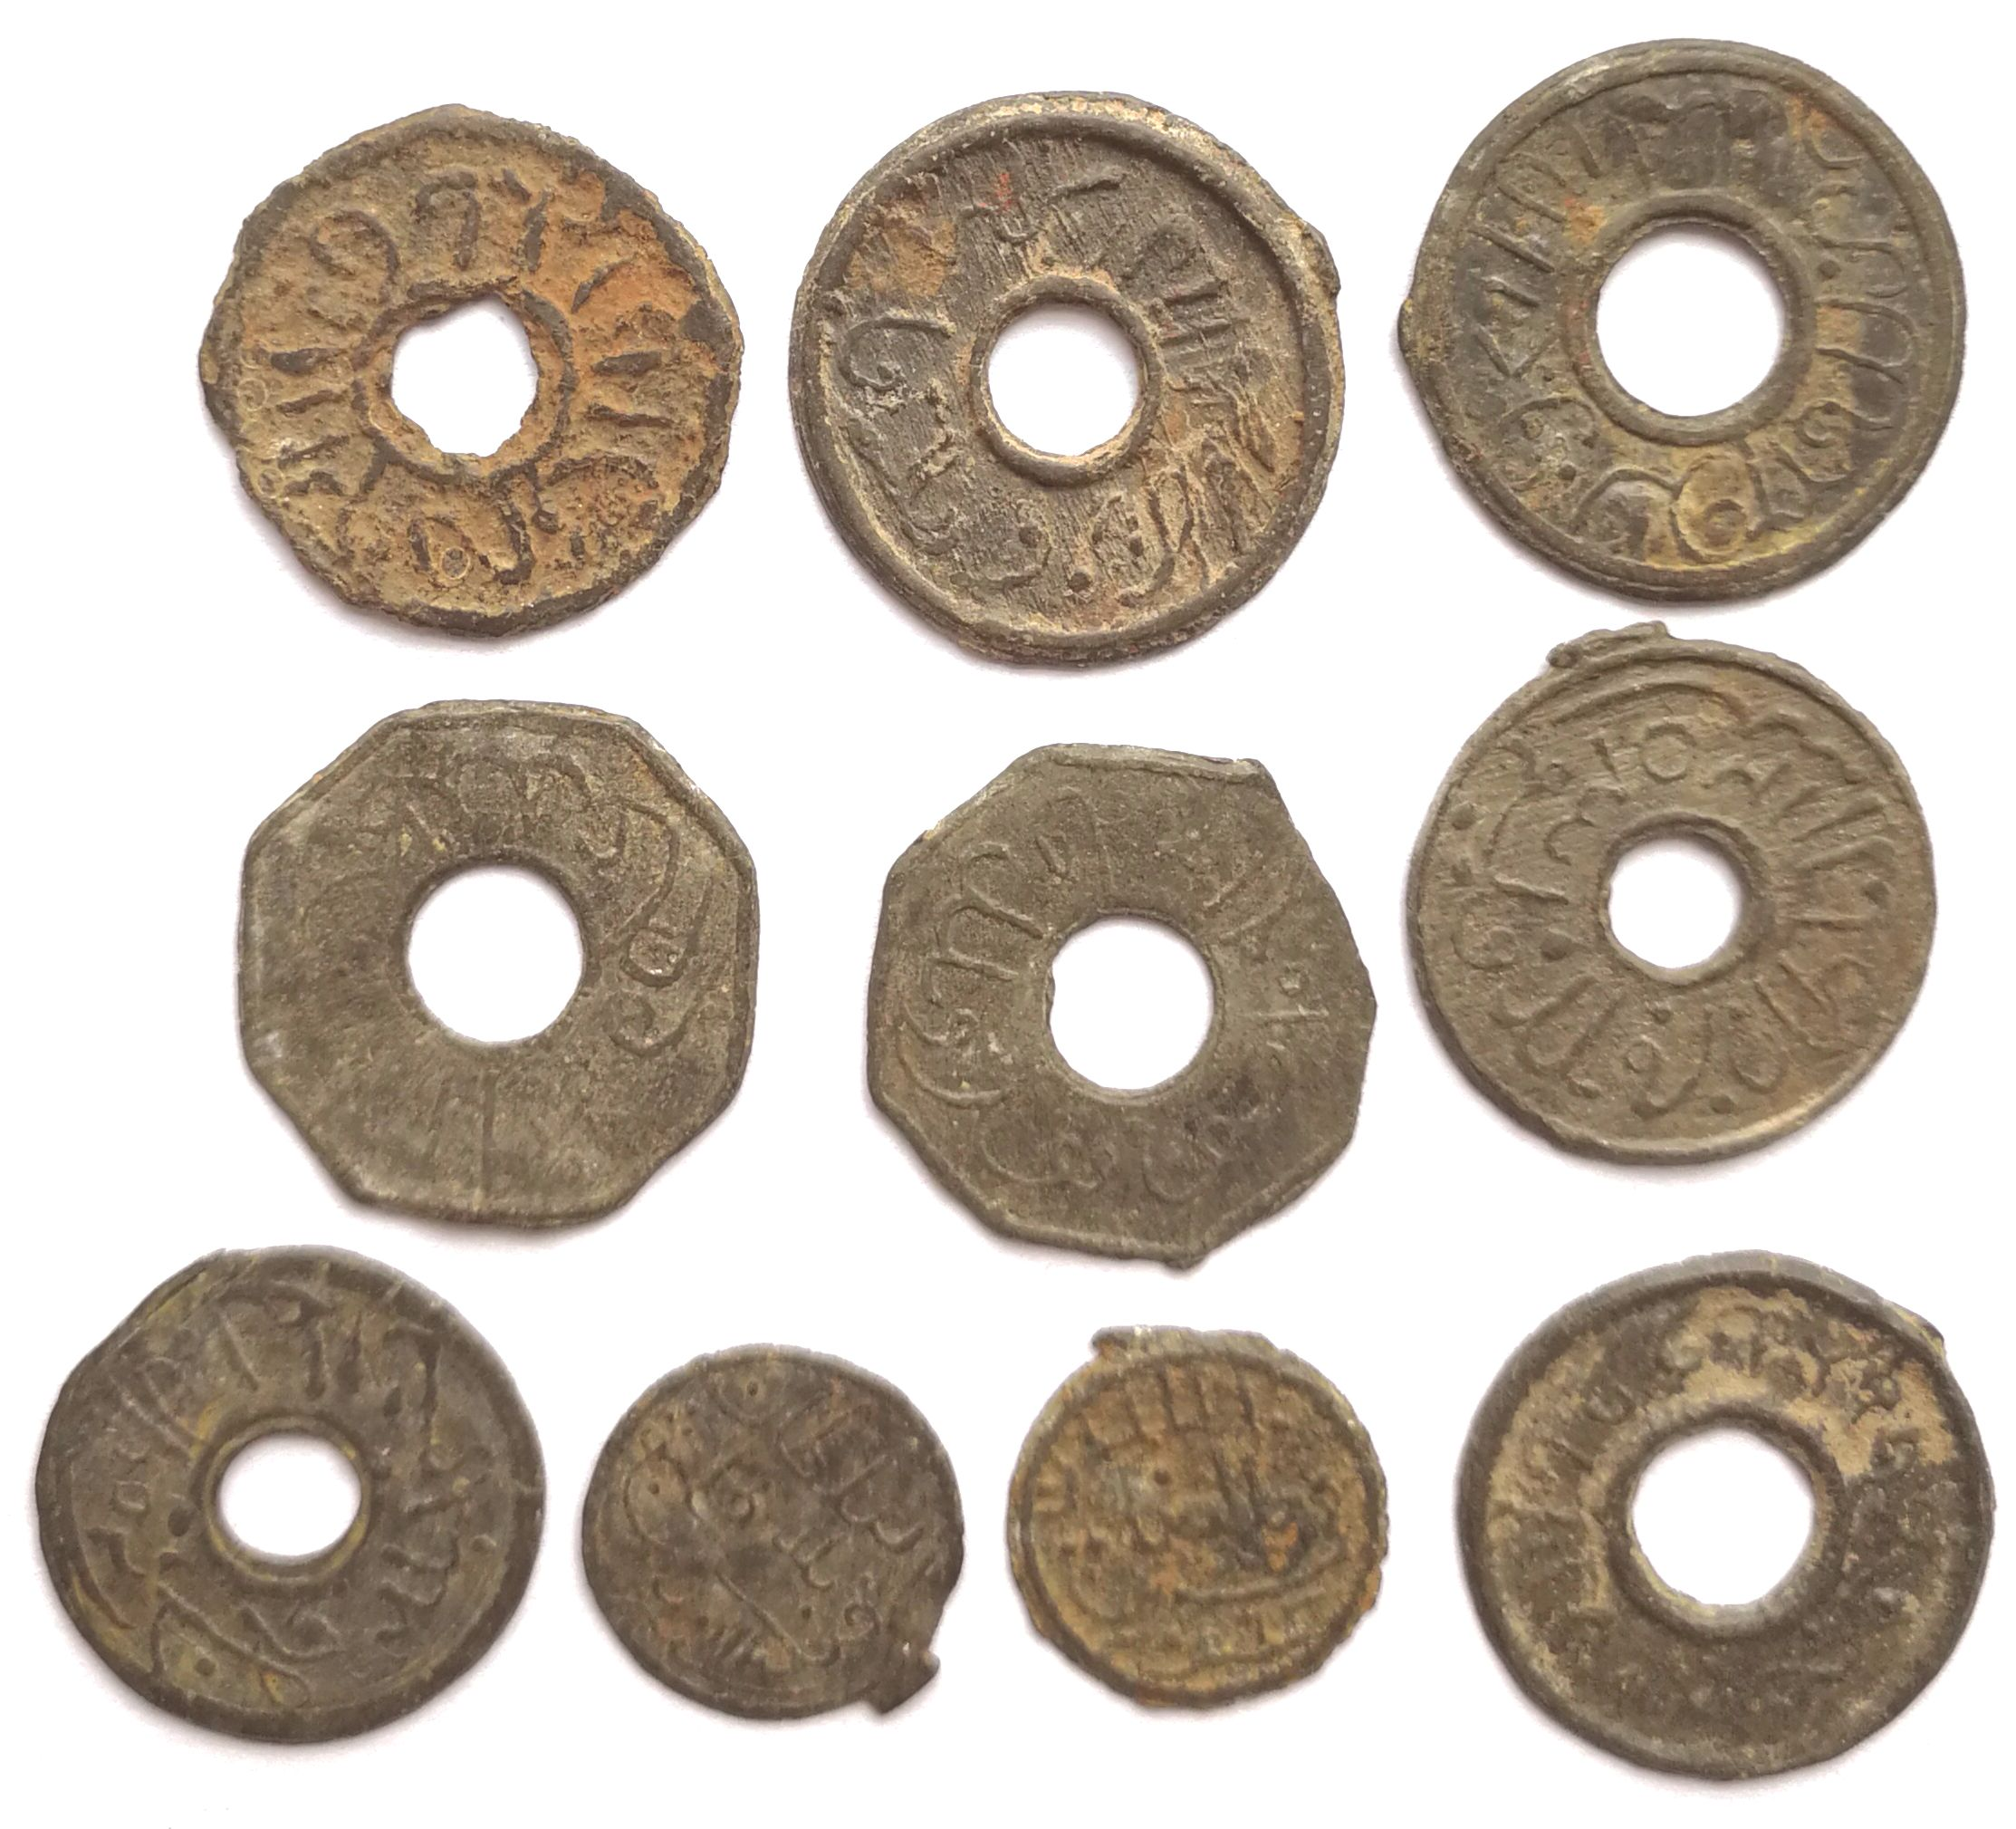 T2154, Ancient Java Bantam Banten Coin, 10 Pcs Tin, Minted in Palembang, 1700's